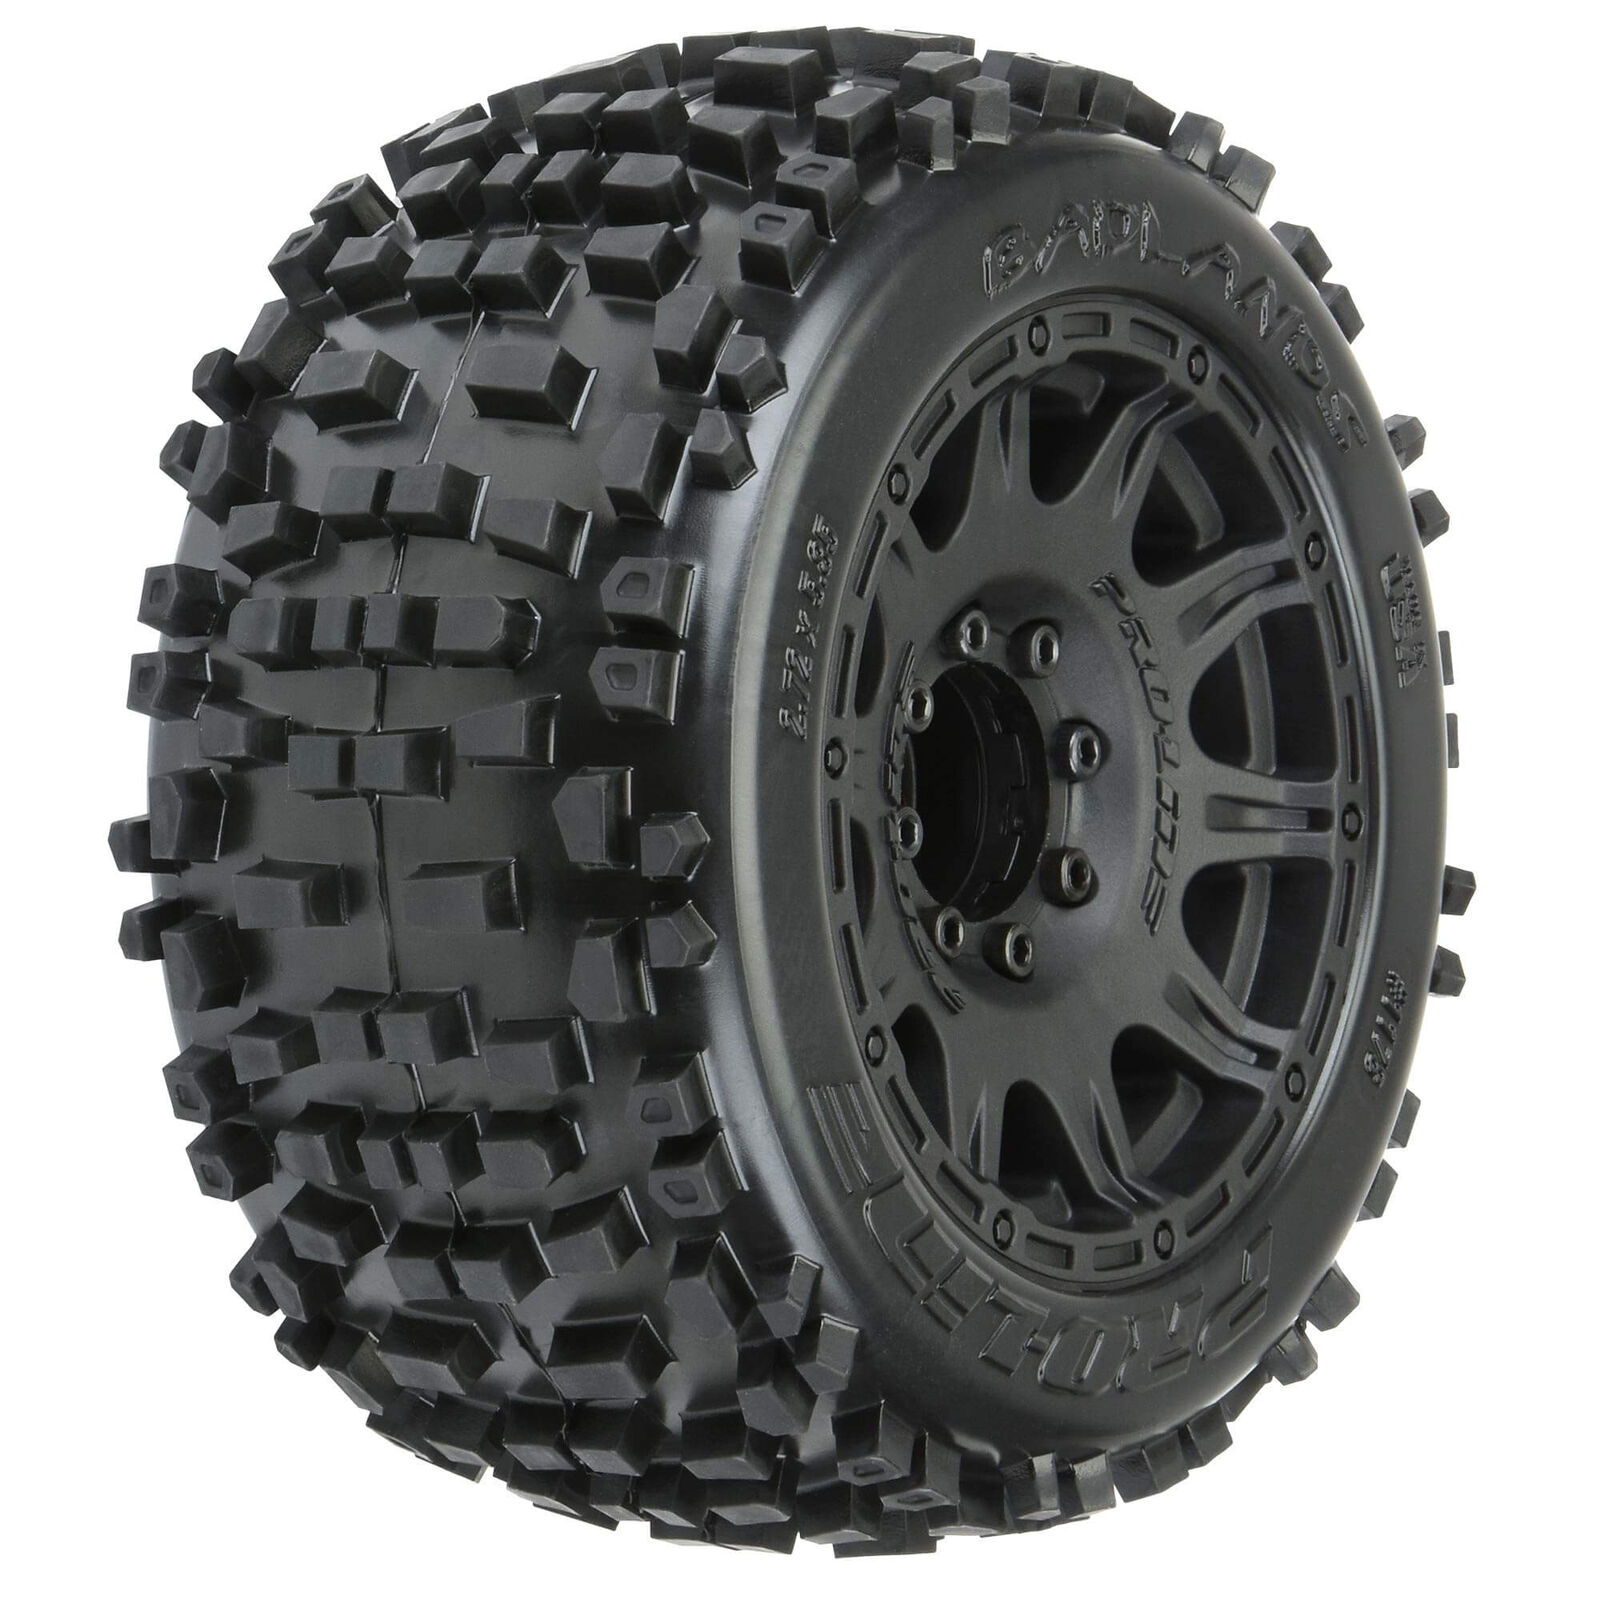 1178-10 Pro-Line Badlands 3.8″ All Terrain Tires Mounted for 17mm MT Front or Rear (Removable Hex)